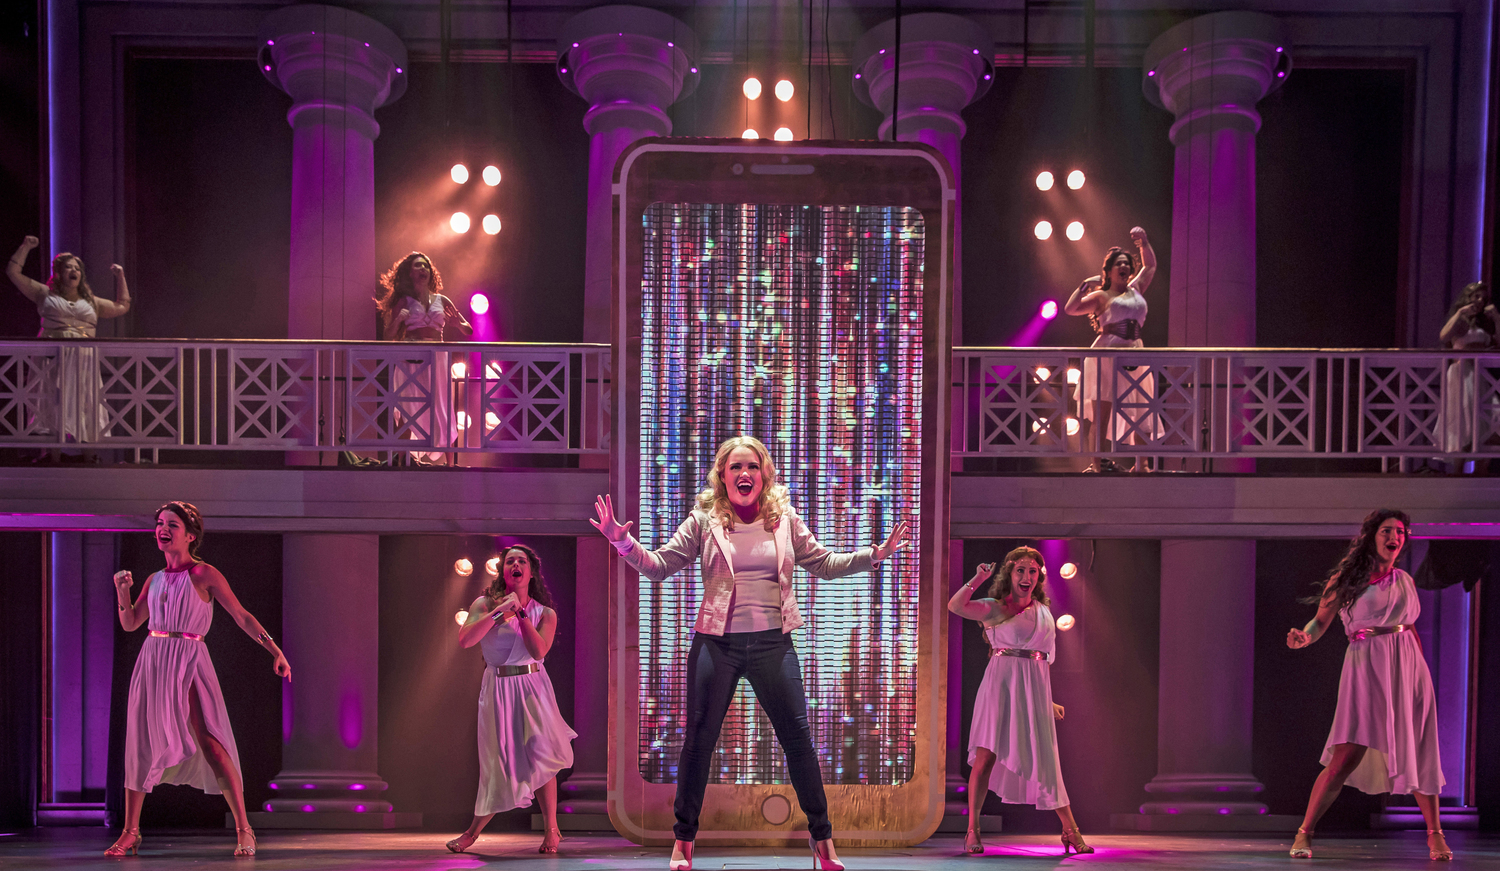 BWW Review: LEGALLY BLONDE at Paramount Theatre